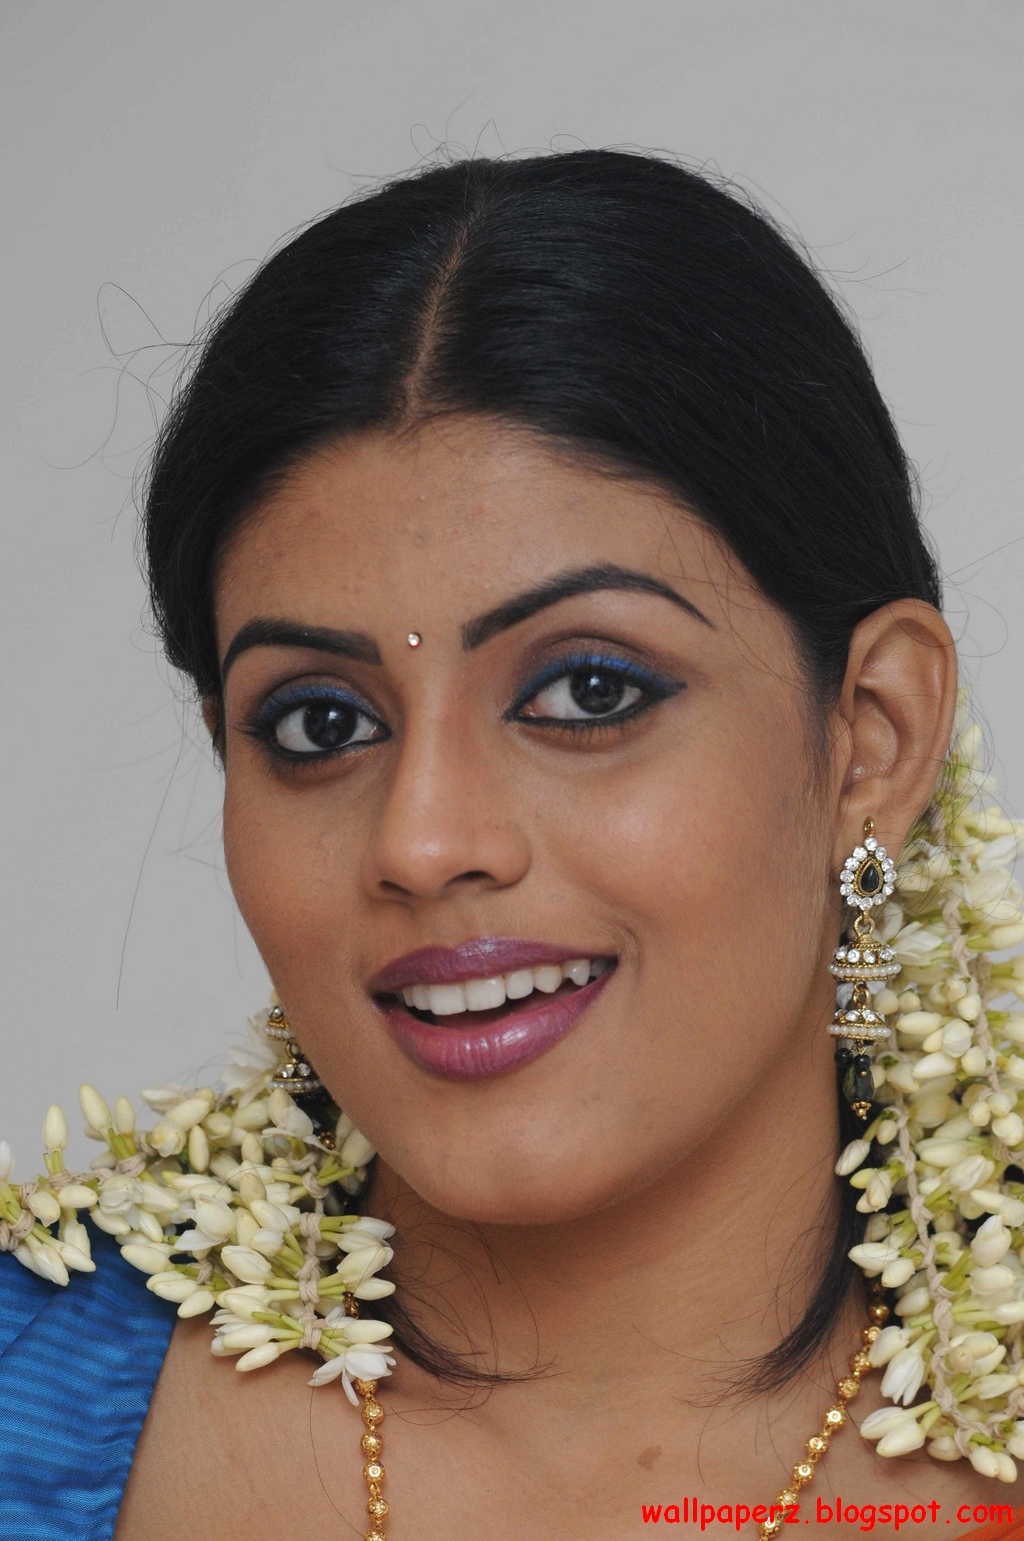 iniya iru maralgaliniya wiki, iniya iru malargal facebook, iniya iru maralgal, indian actress photos, iniya iru malargal 183, iniya iru malargal 189, iniya iru malargal 184, iniya iru malargal, iniya iru malargal tubetamil, iniya iru malargal tamil, iniya pongal nalvazhthukkal tamil, iniya tamil osai, iniya navel, iniya hot photos, iniya pirantha naal vaazhthukkal, iniya facebook, iniya photos, iniya puthandu nalvazhthukkal, indian actress, iniya pon nilave song lyrics